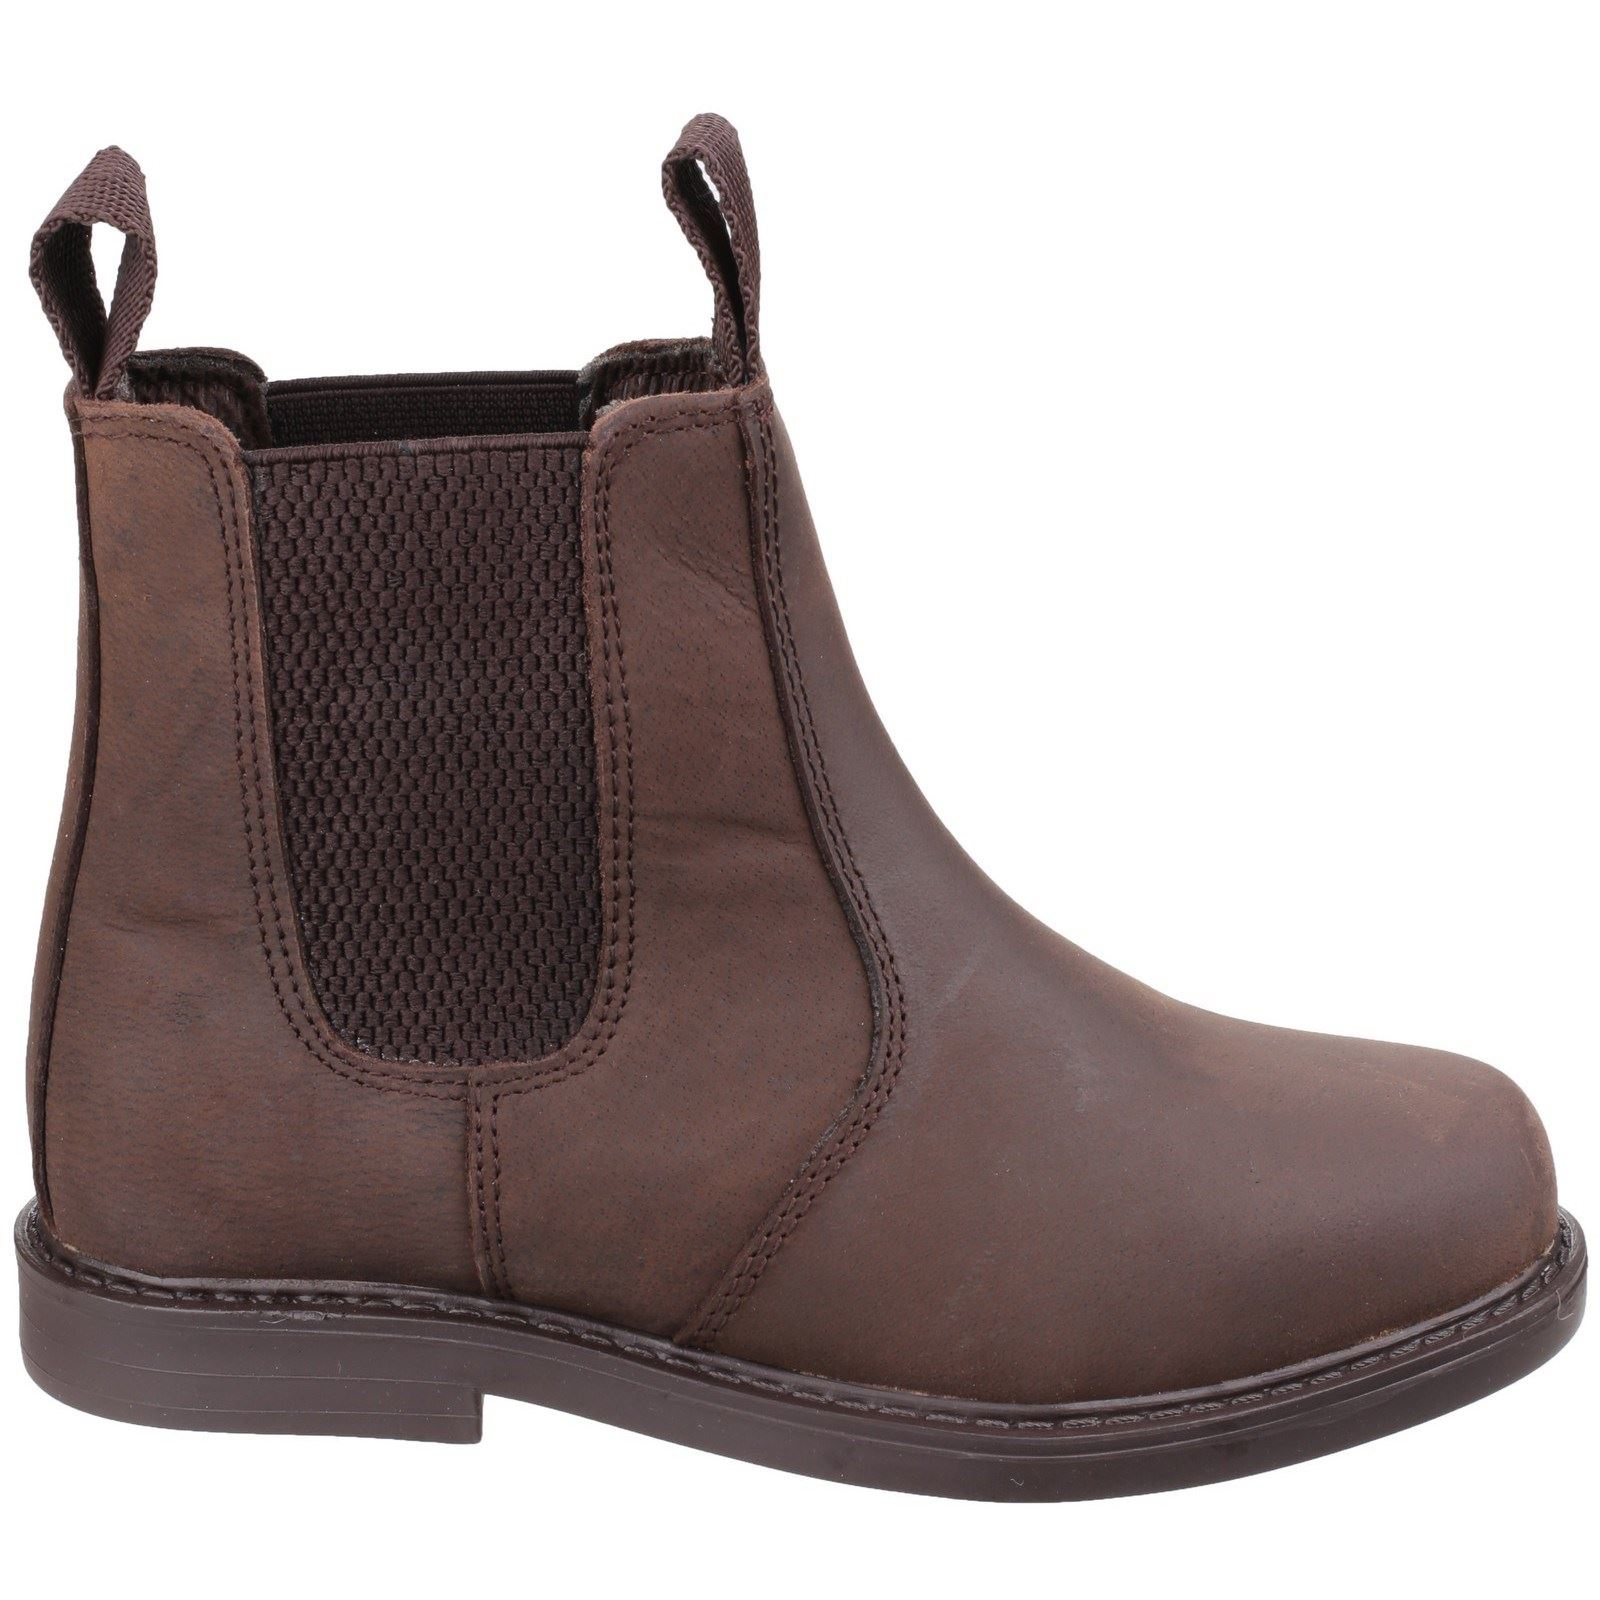 Amblers Childrens Boots Camberwell Pull On Dealer Boot Brown Non Safety